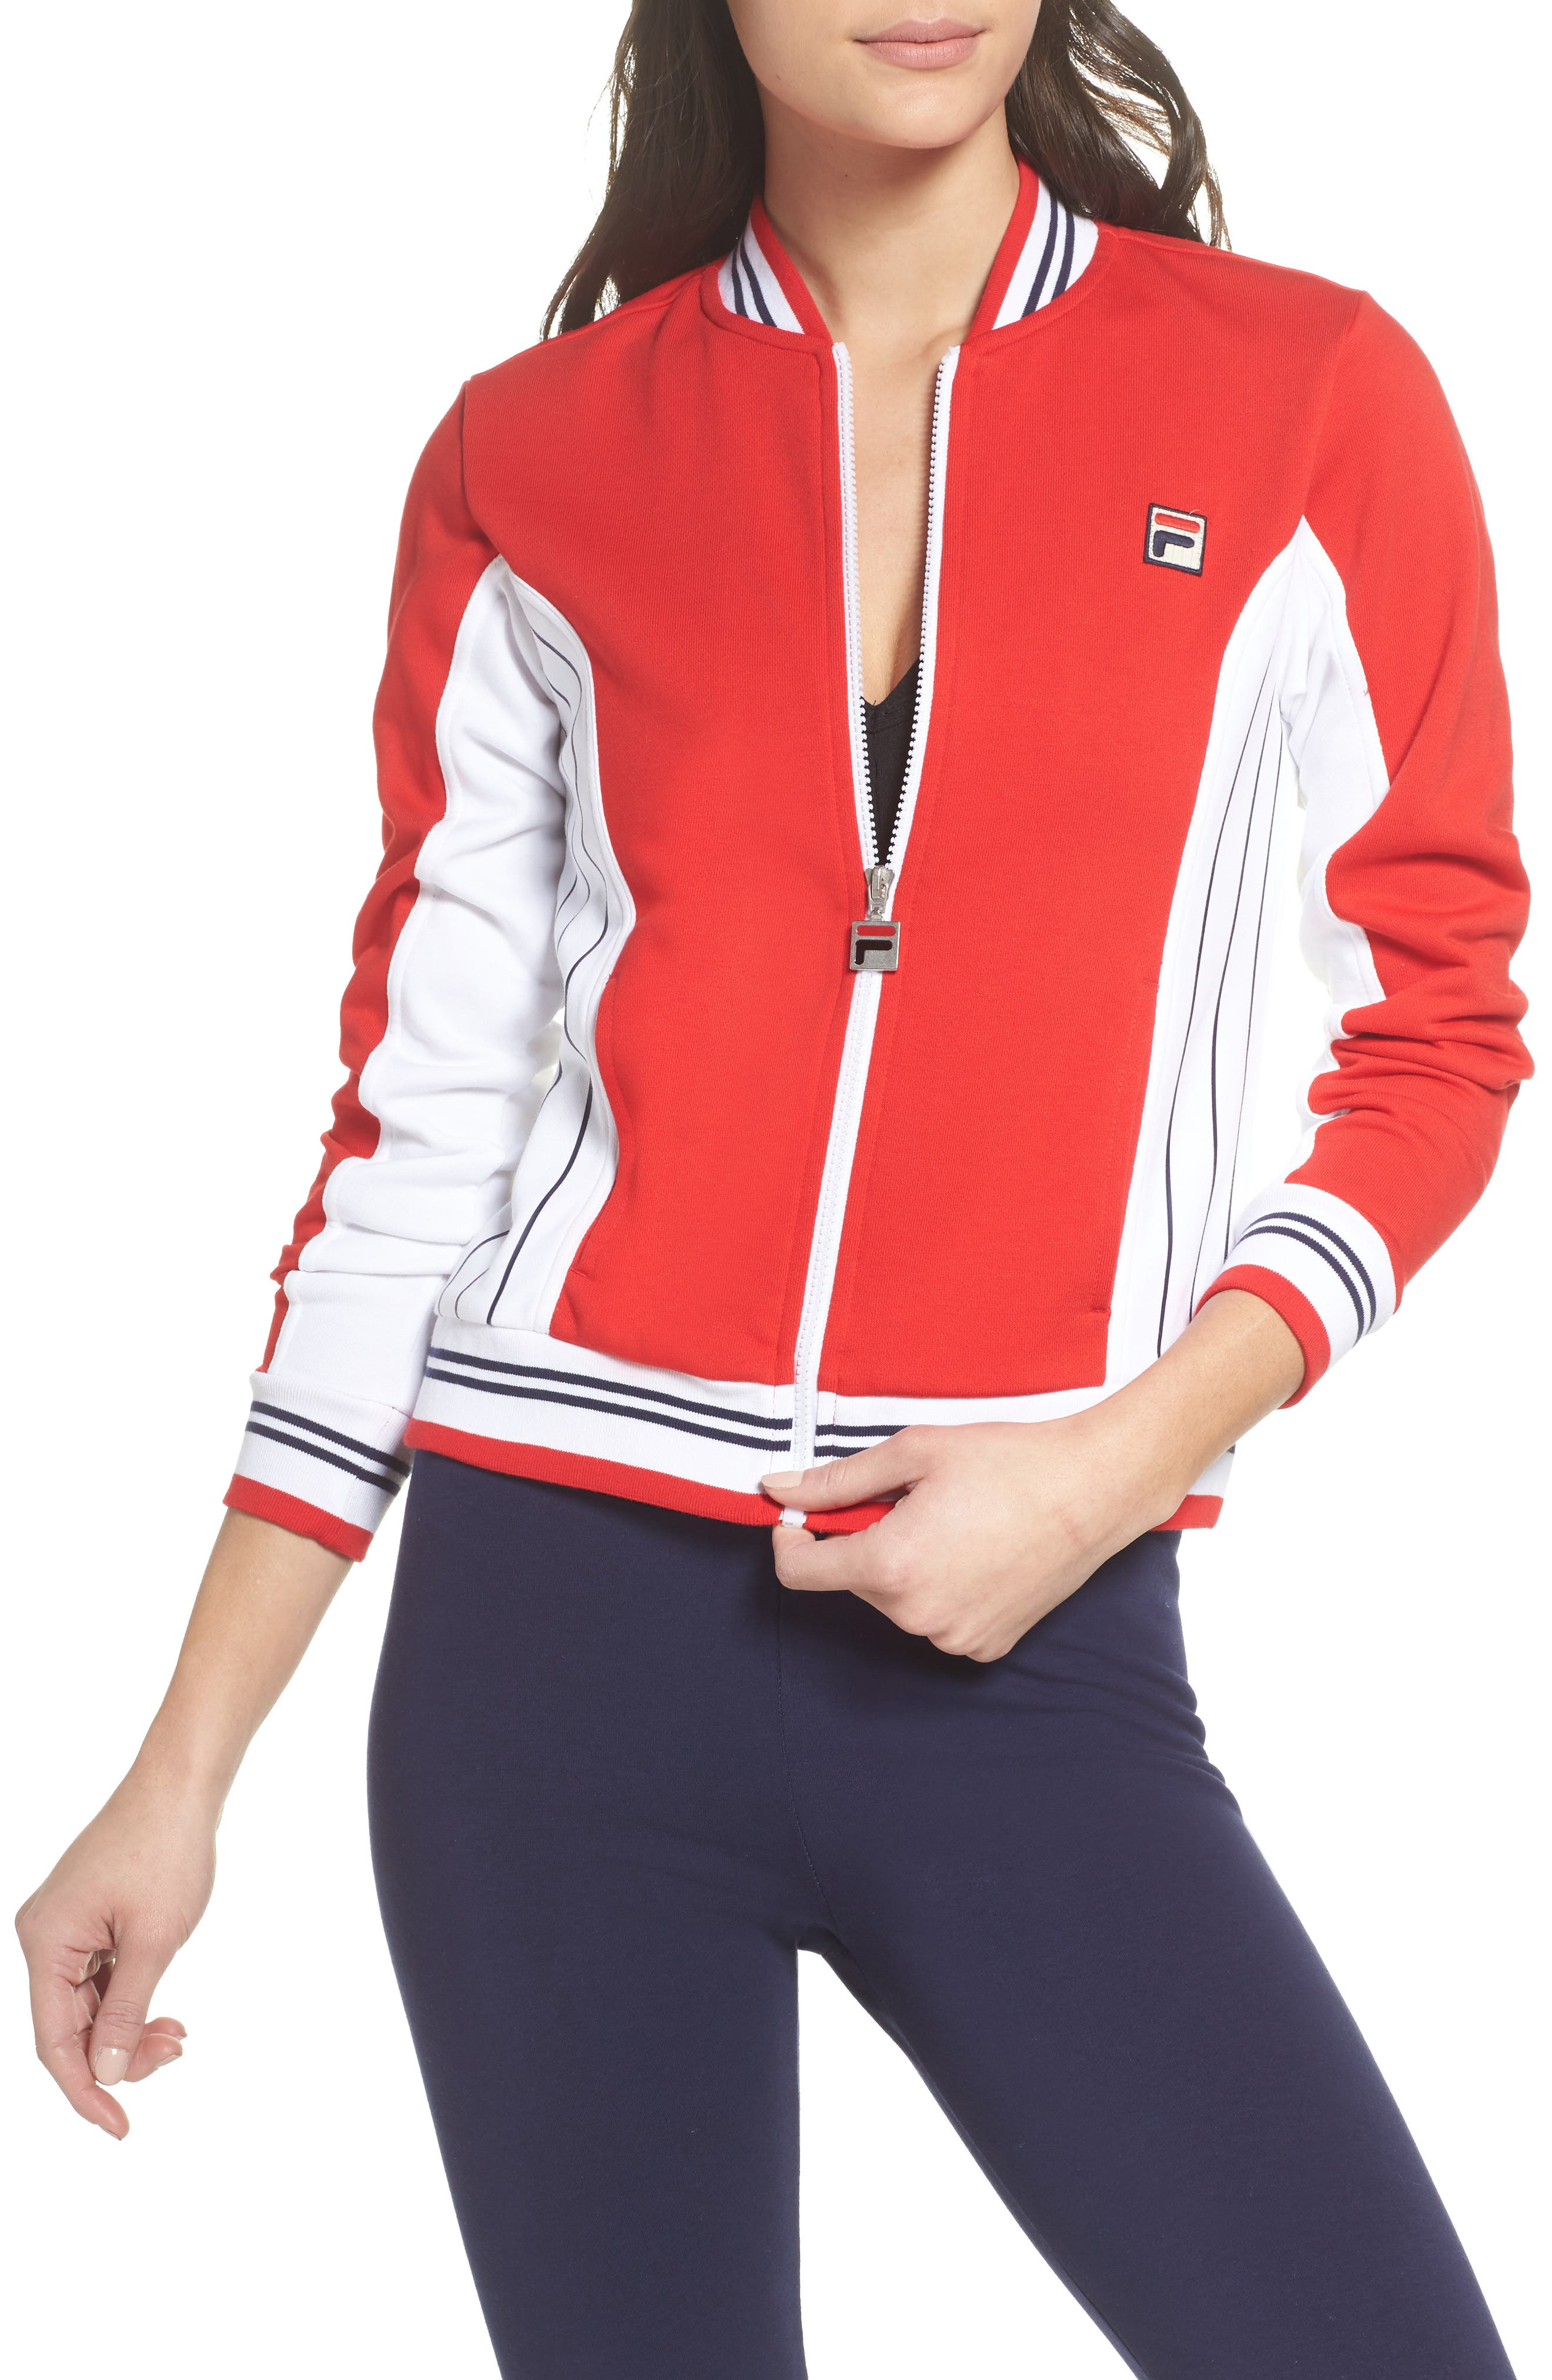 Settanta II Jacket,                             Main thumbnail 1, color,                             Chinese Red/ White/ Navy